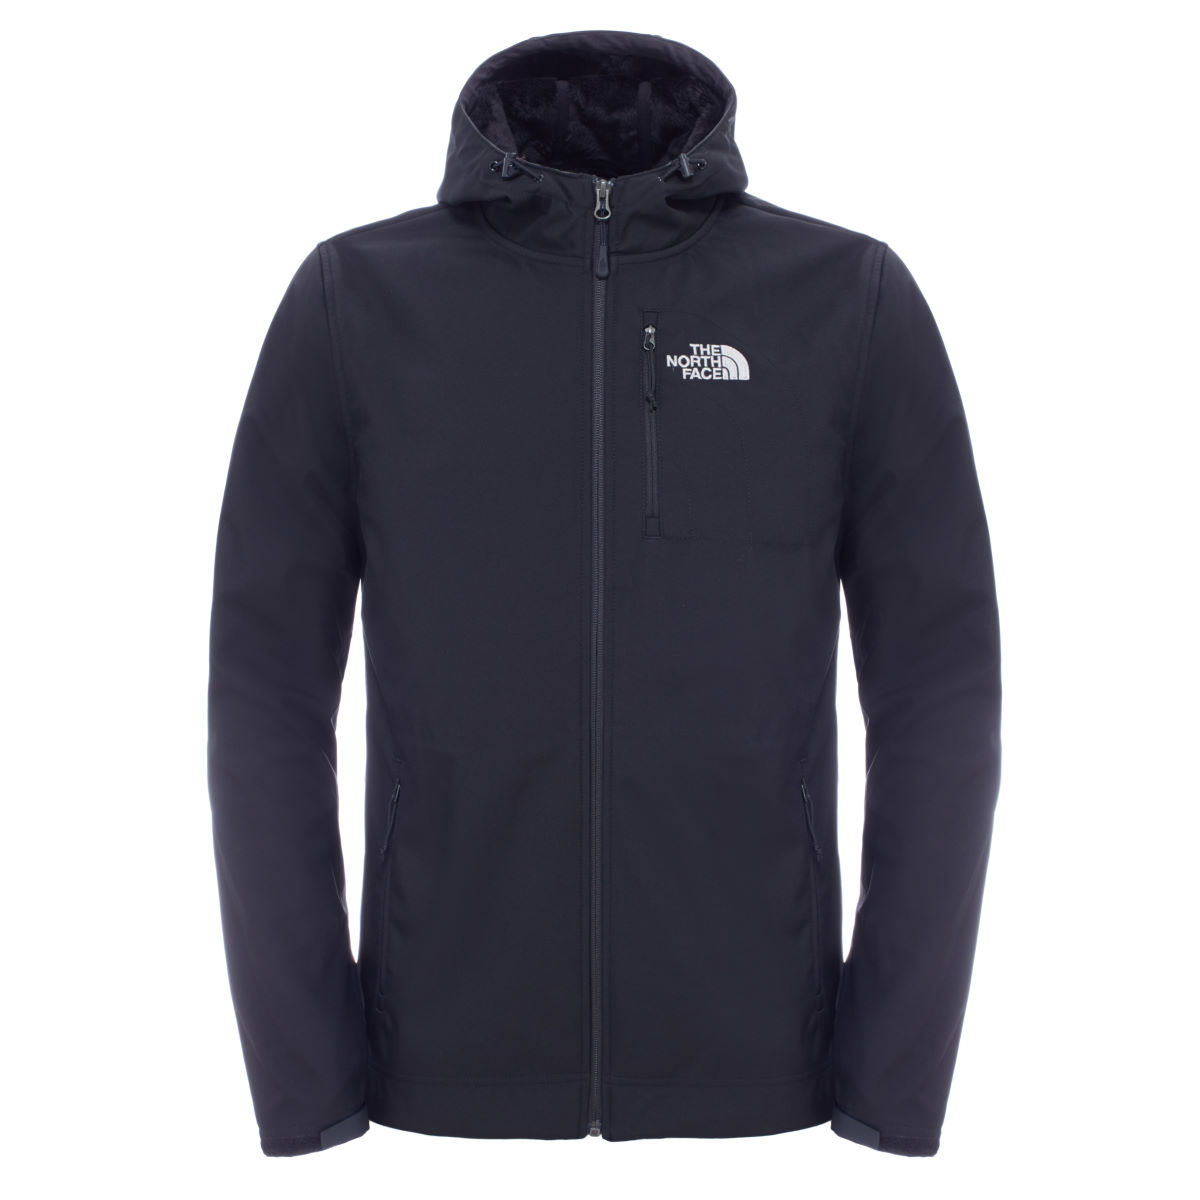 The North Face The North Face Durango Hoodie   Jackets